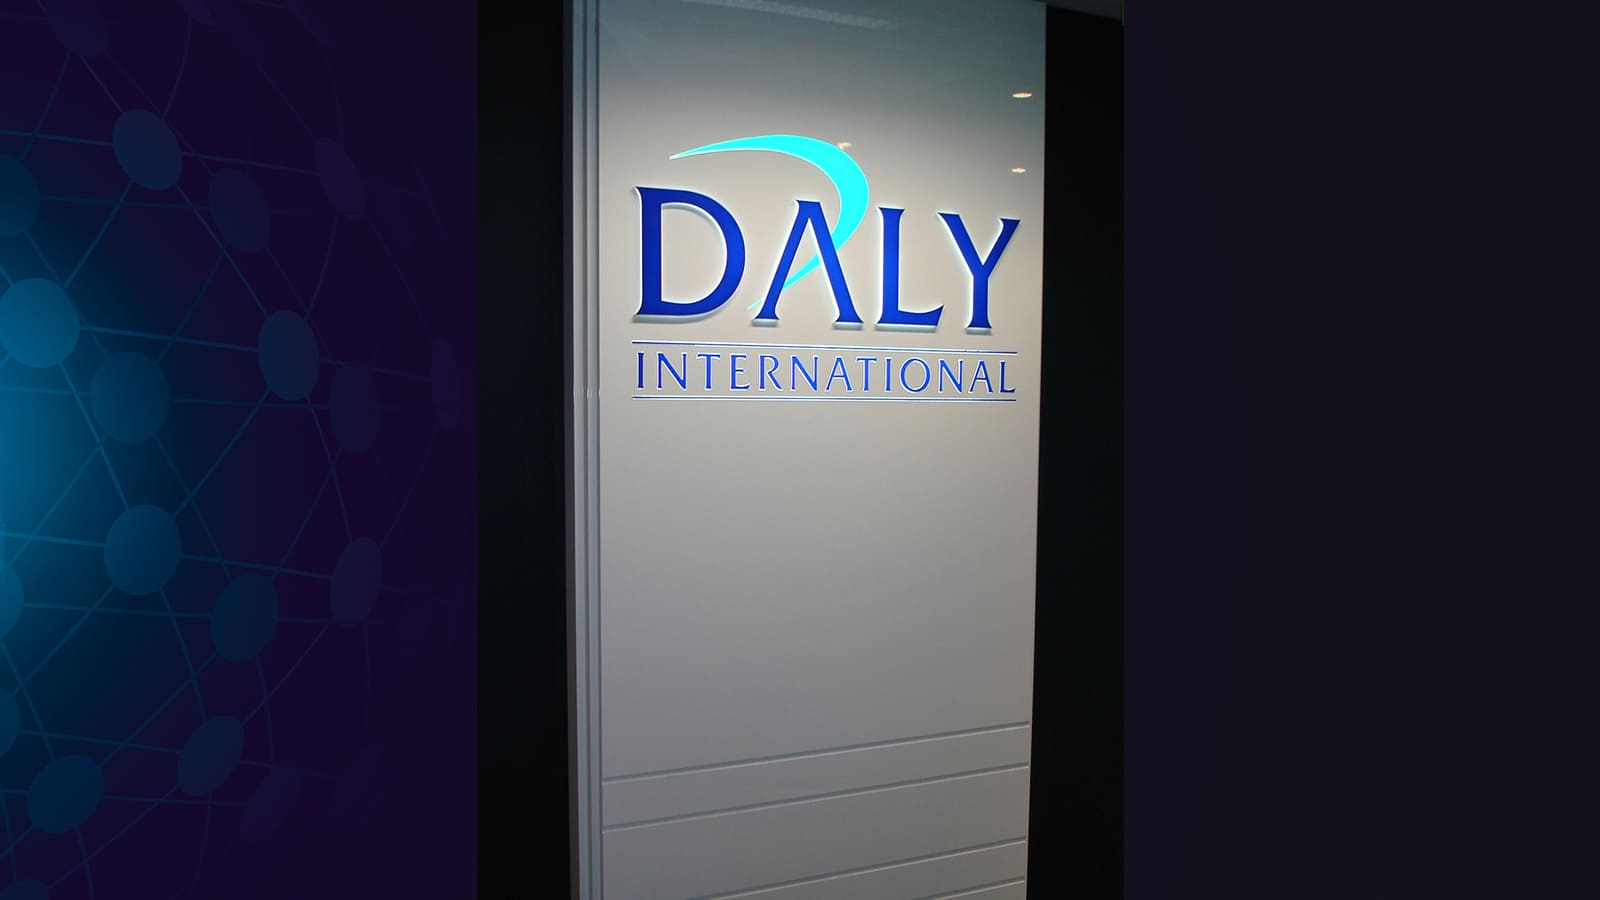 reception-daley-2